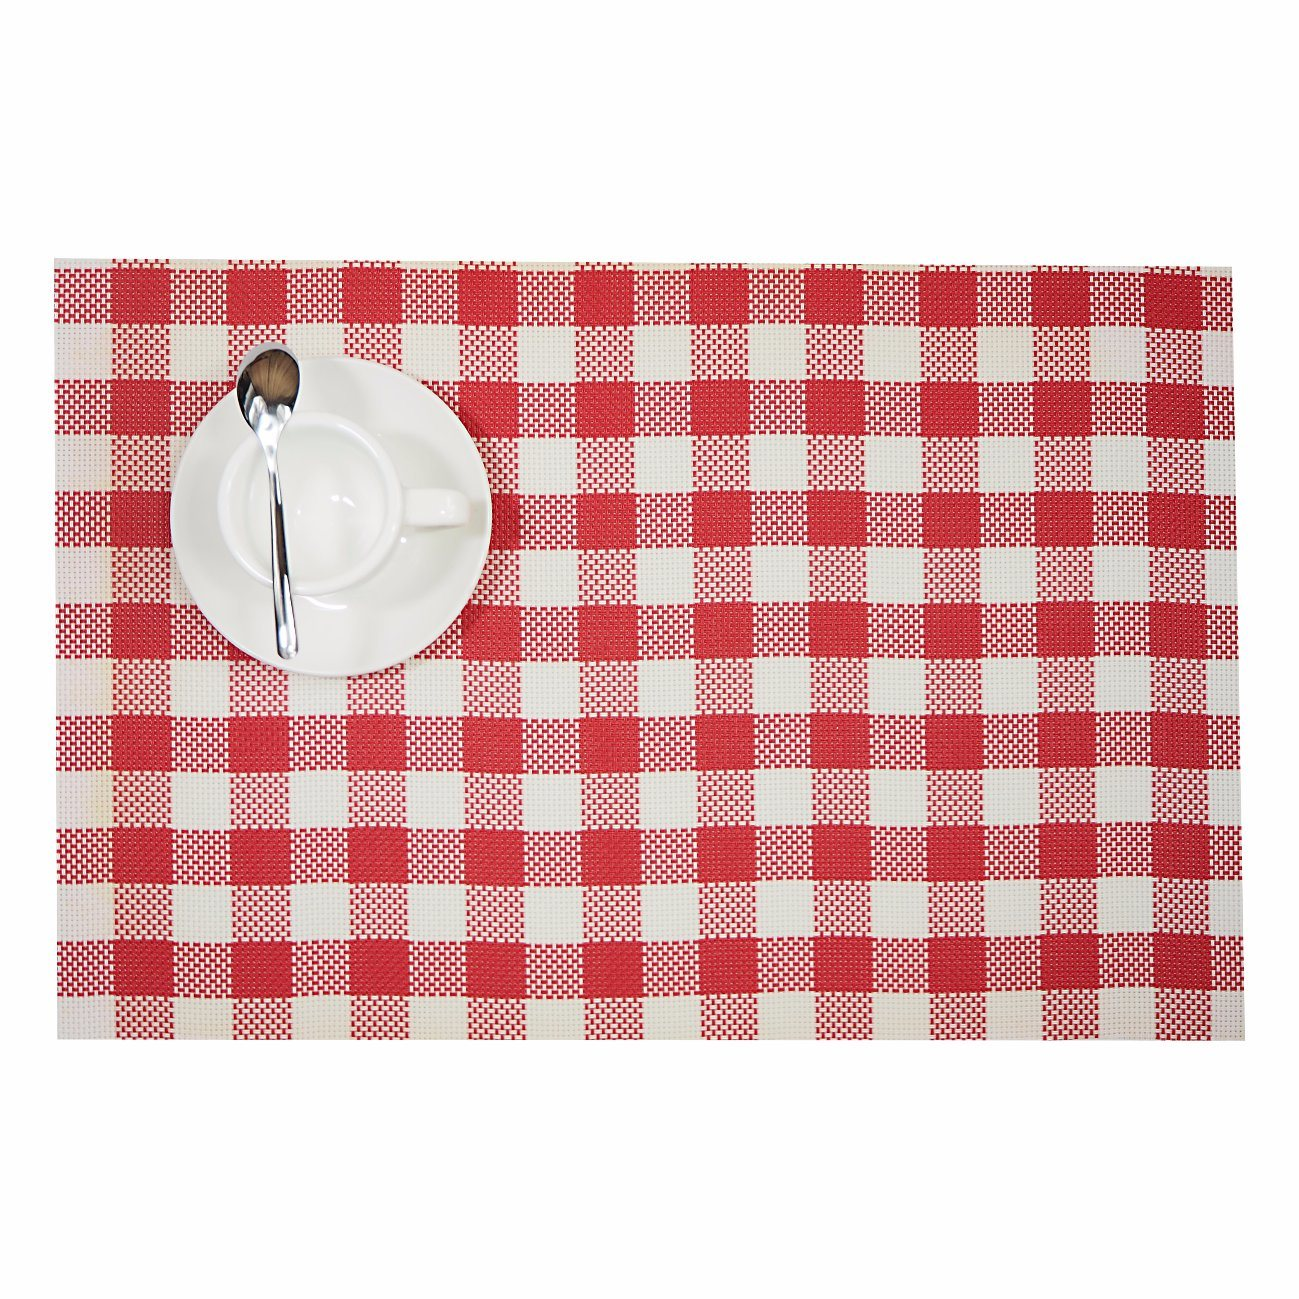 Home Textile Woven Placemat for Table & Flooring